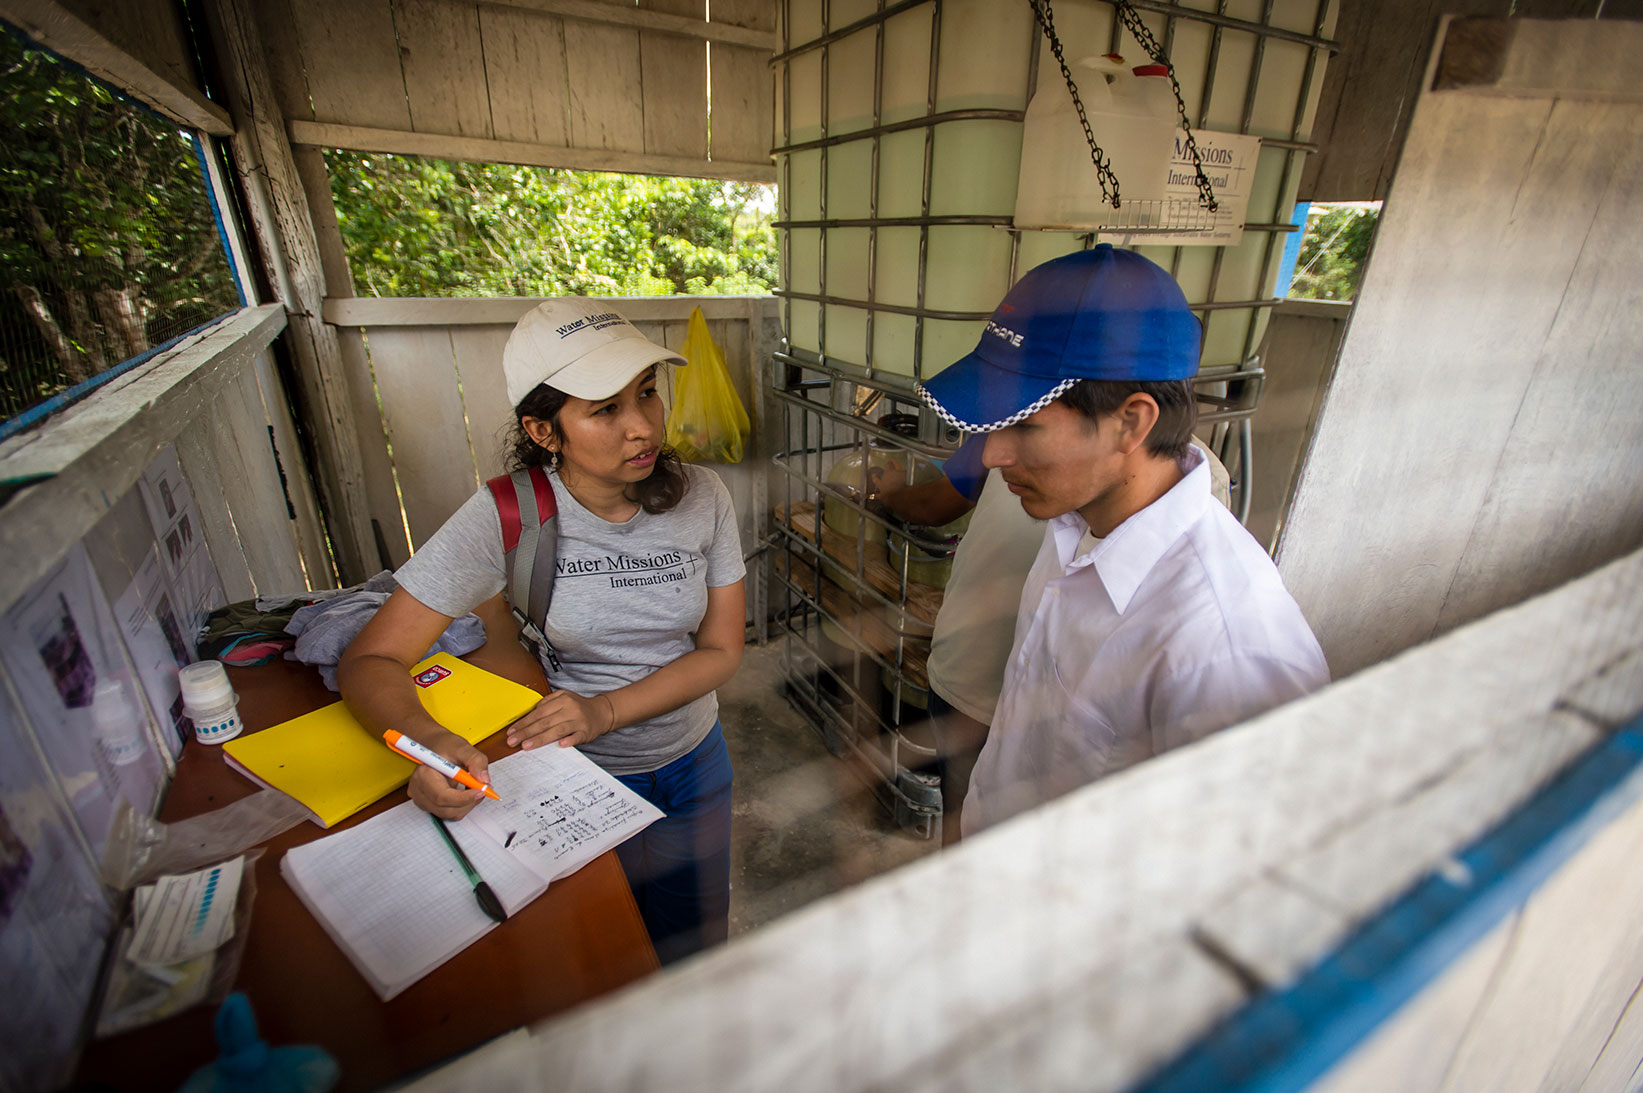 A Water Mission staff member teaches about sustainability.